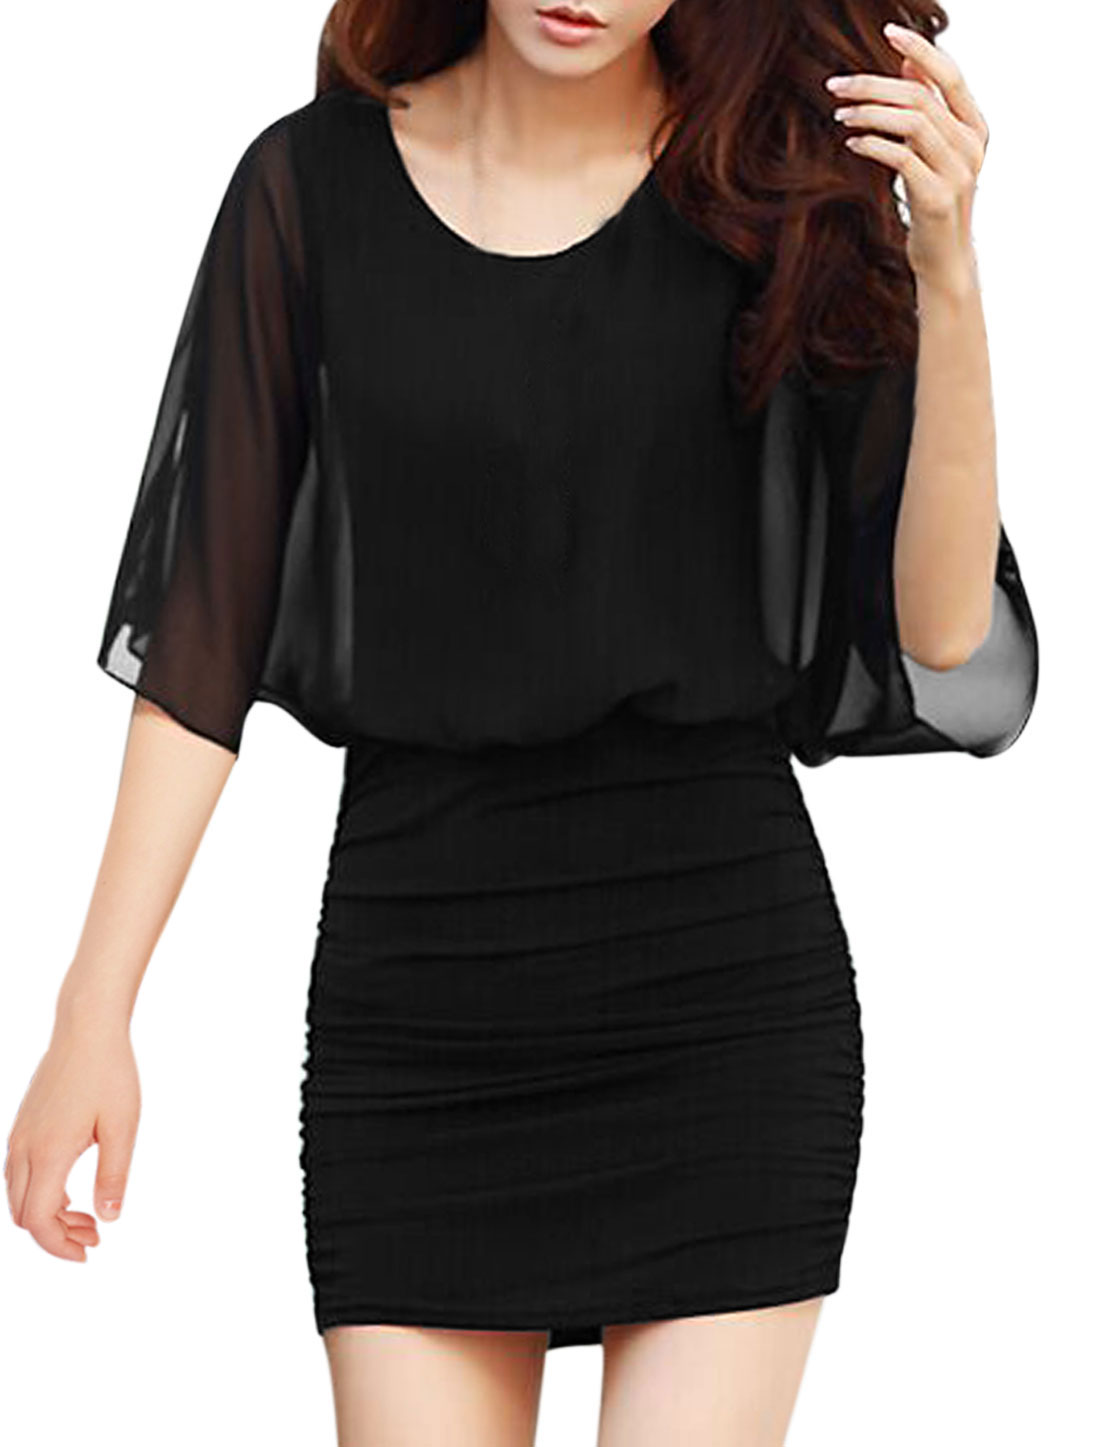 Woman Cold Shoulder Half Dolman Sleeves Chiffon Panel Blouson Dress Black M